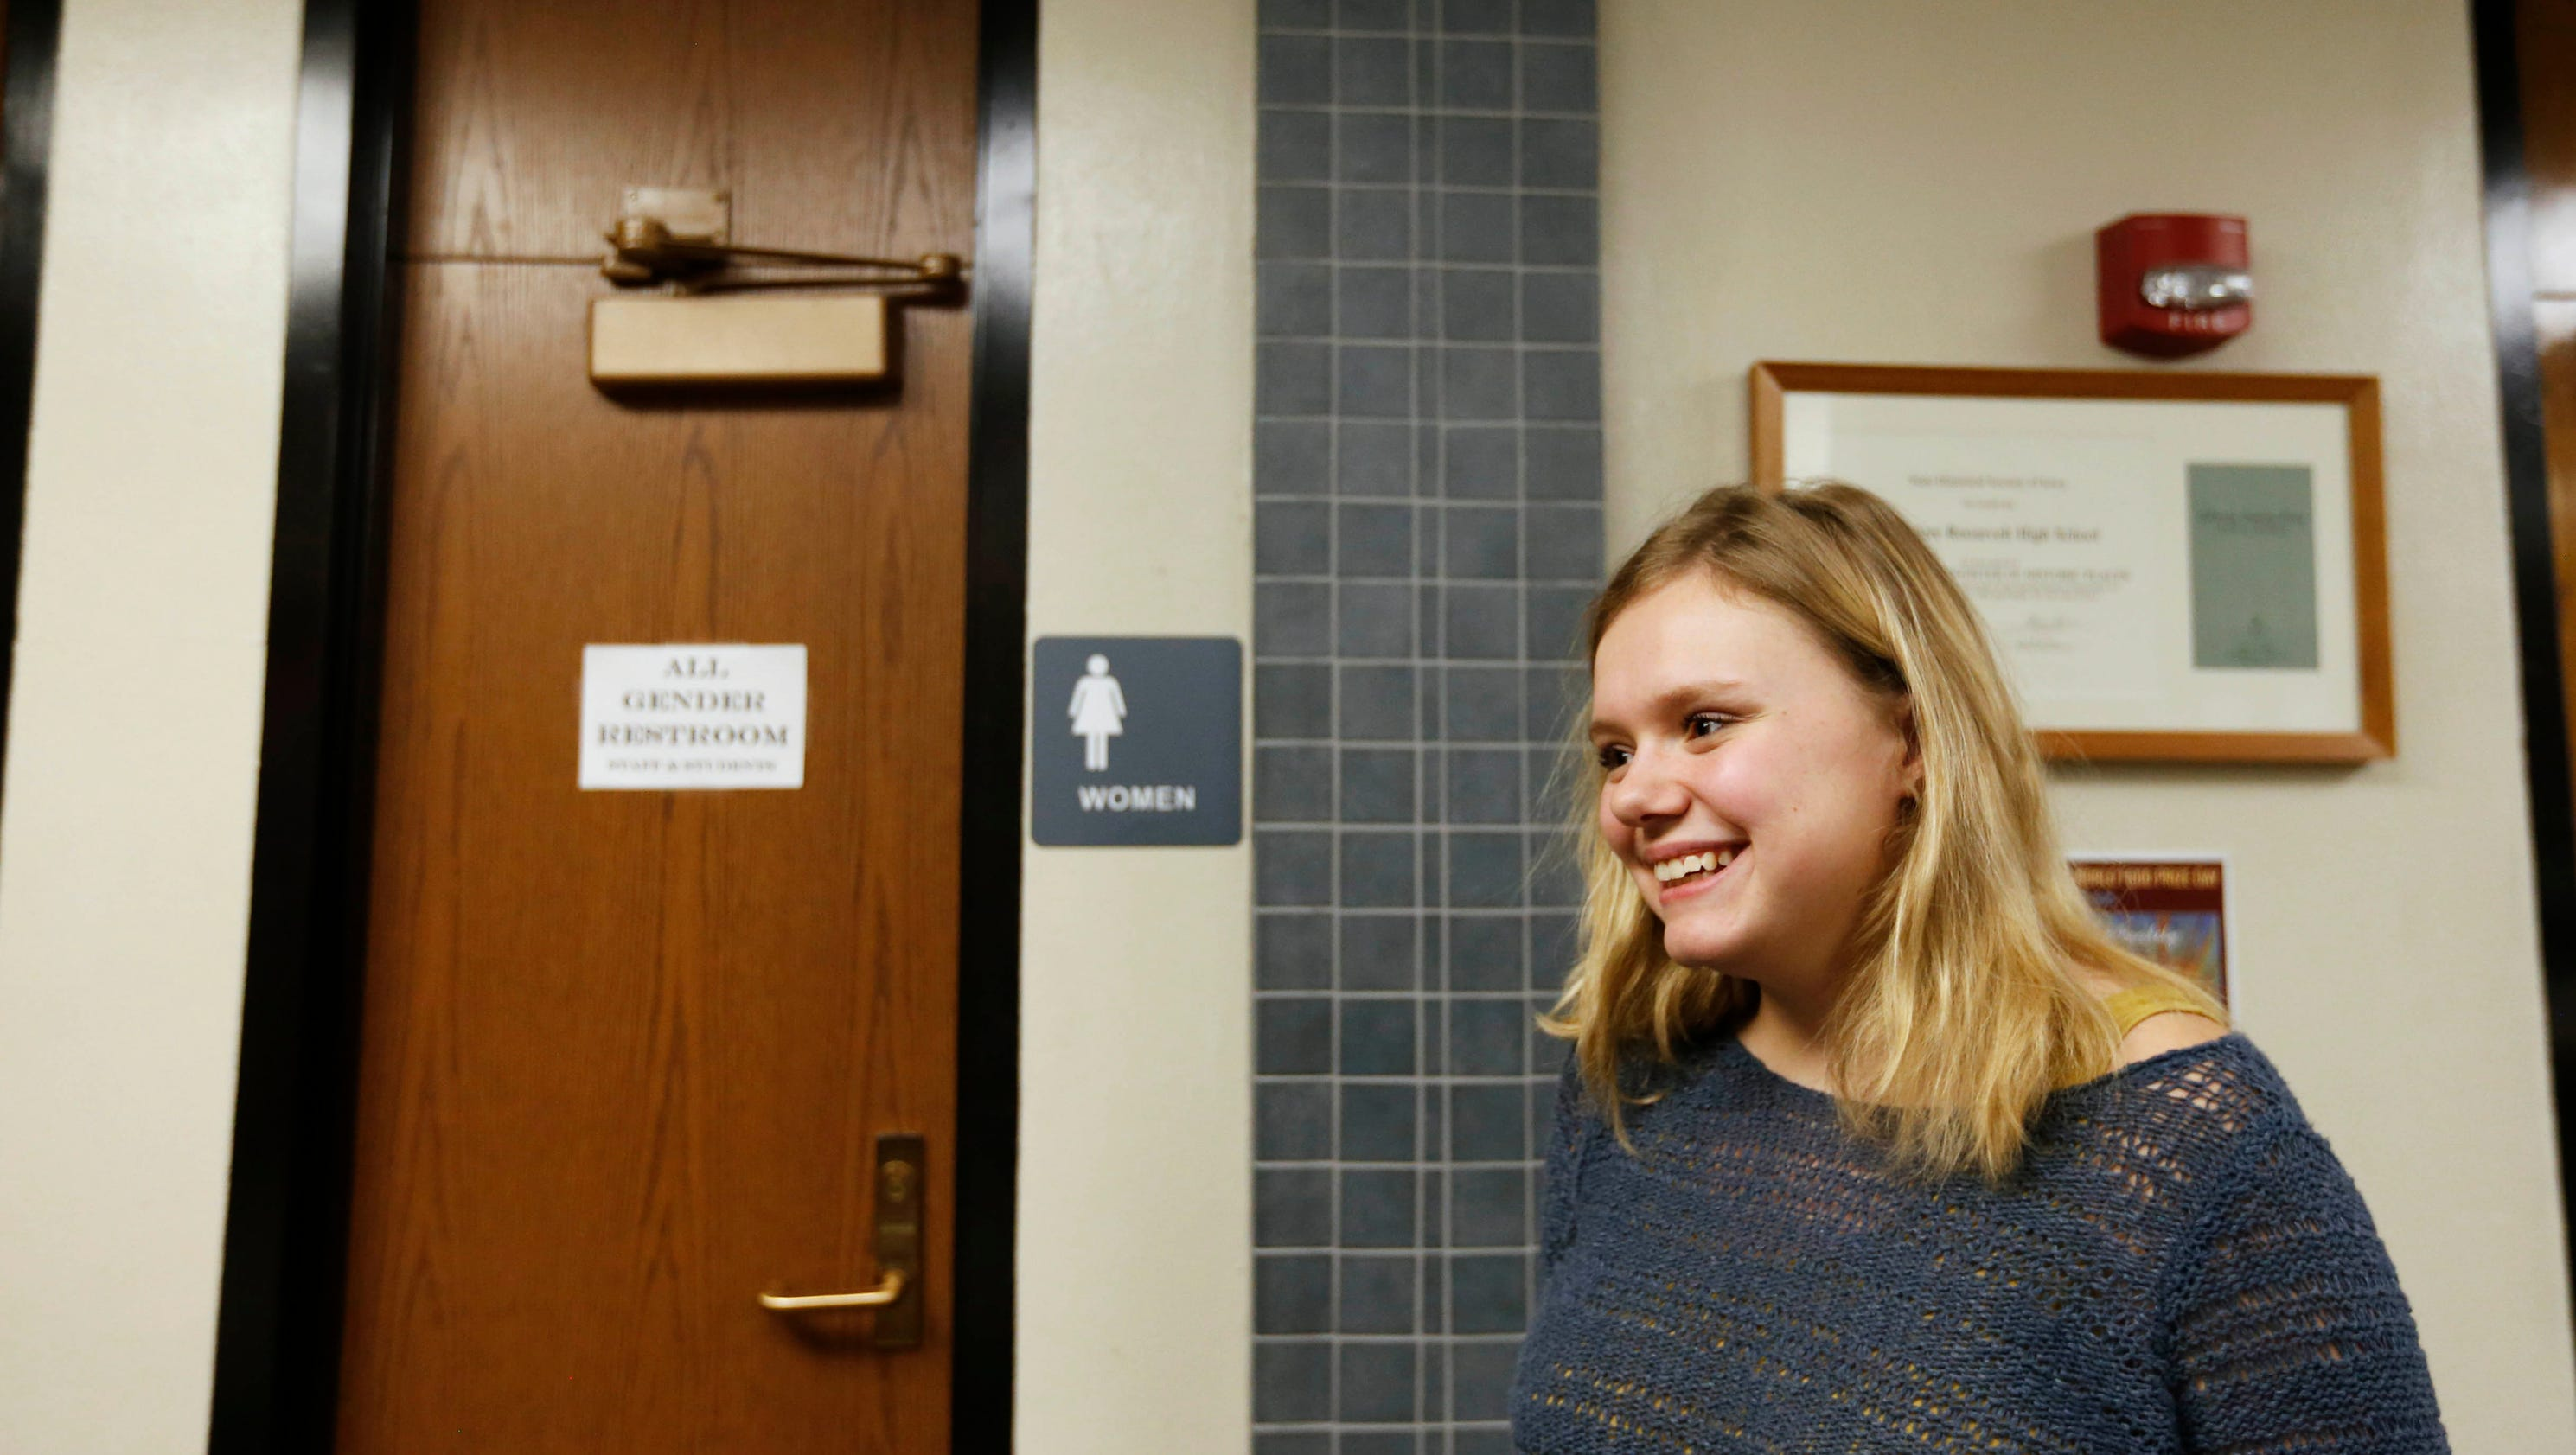 'All gender' restrooms in Iowa aim to make students feel safe